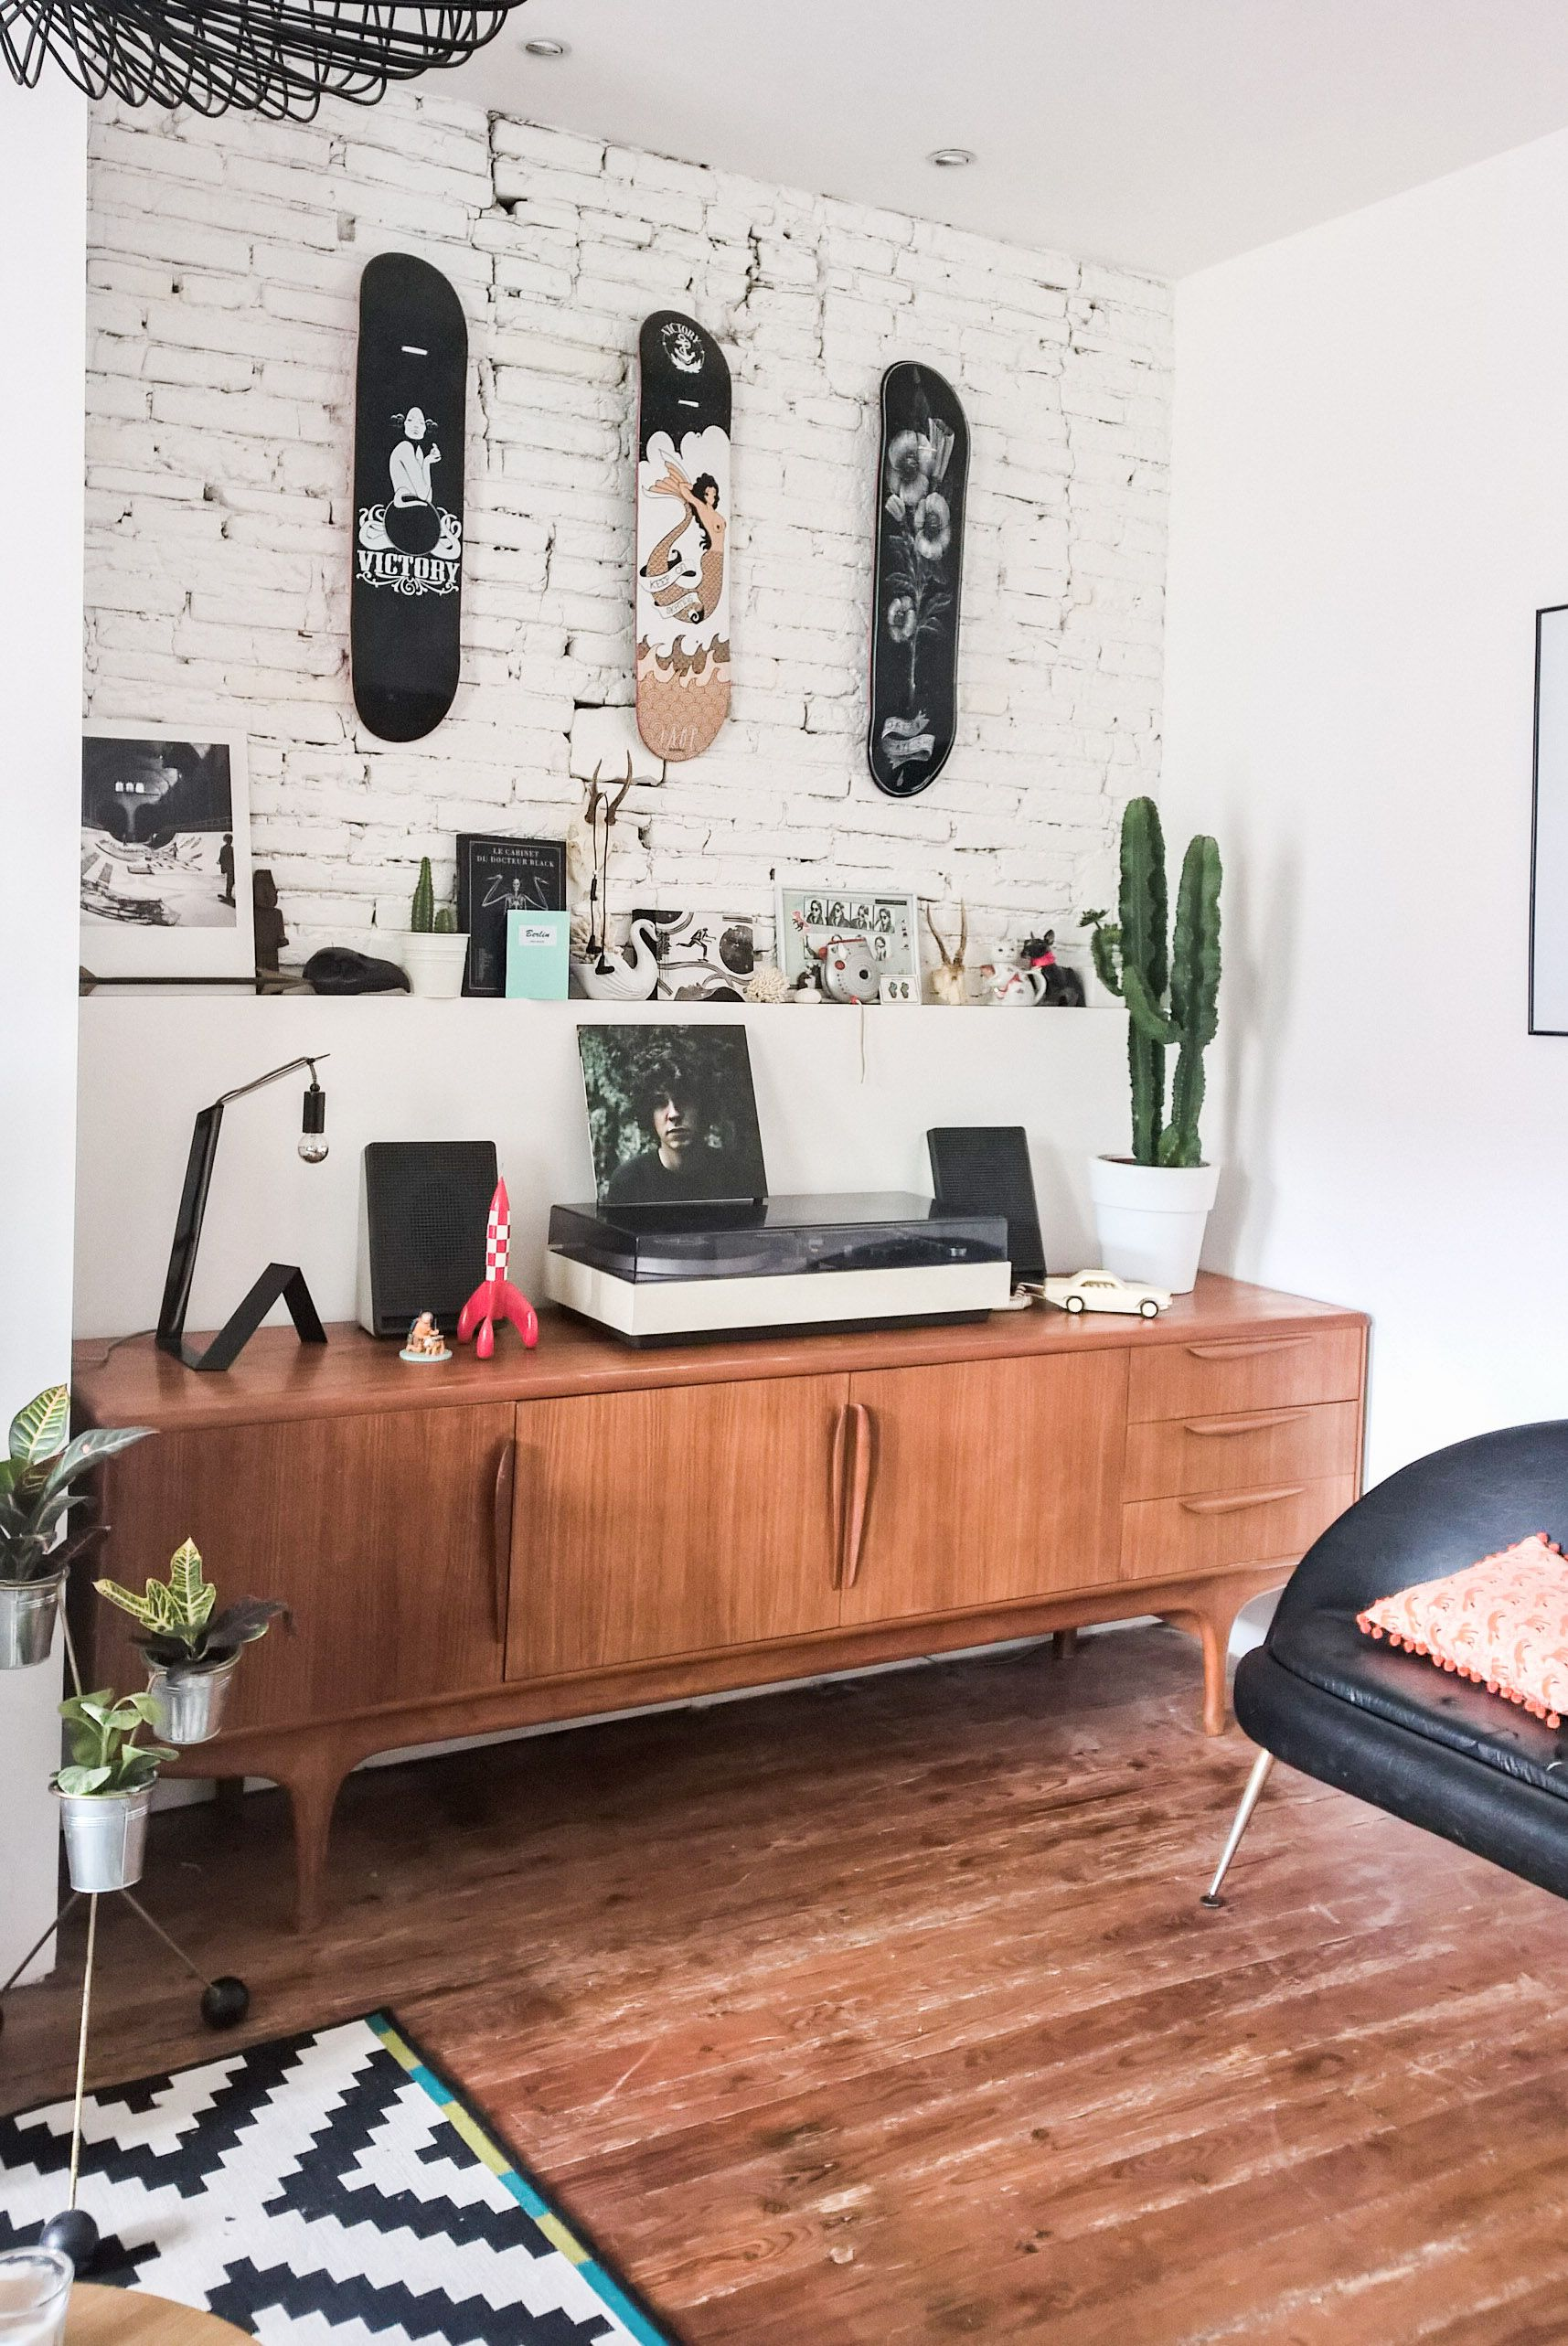 salon avec buffet bas retro et vintage aux allures. Black Bedroom Furniture Sets. Home Design Ideas